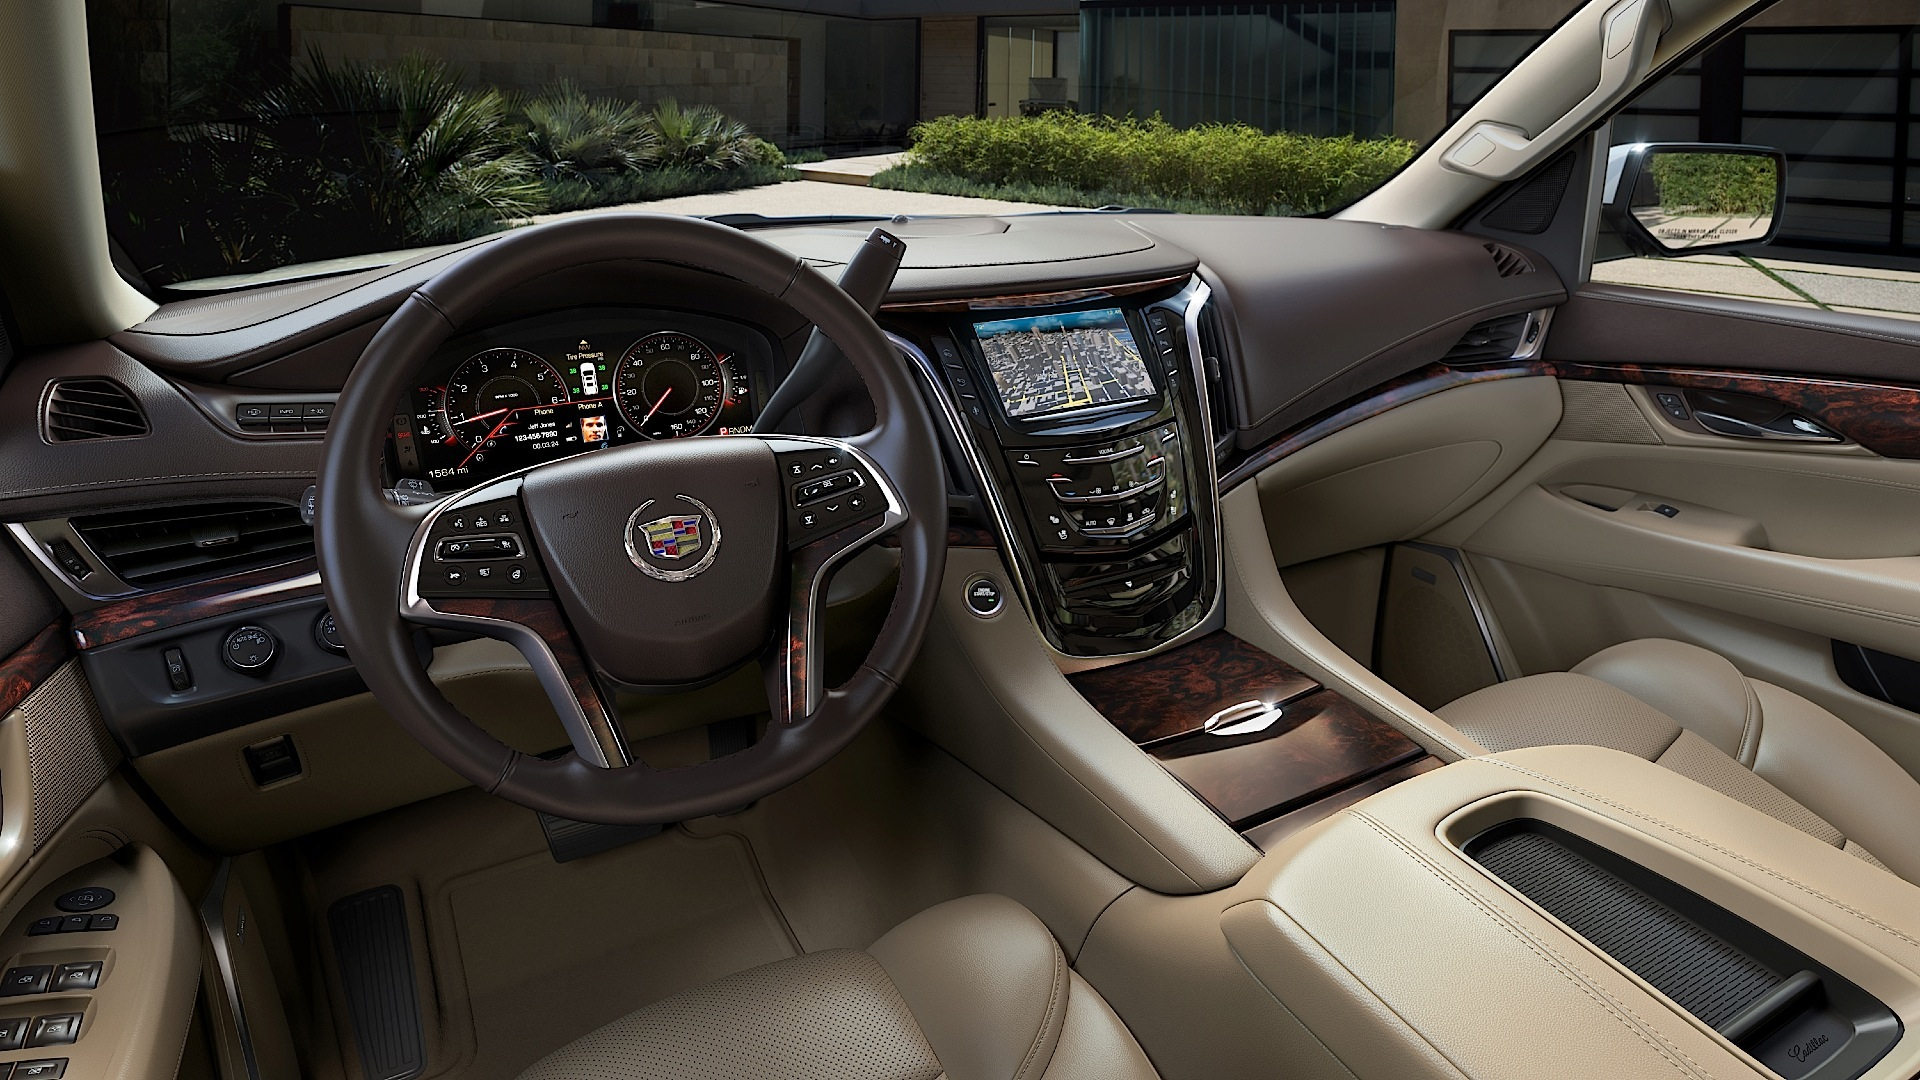 CADILLAC Escalade specs & photos - 2014, 2015, 2016, 2017, 2018, 2019 - autoevolution